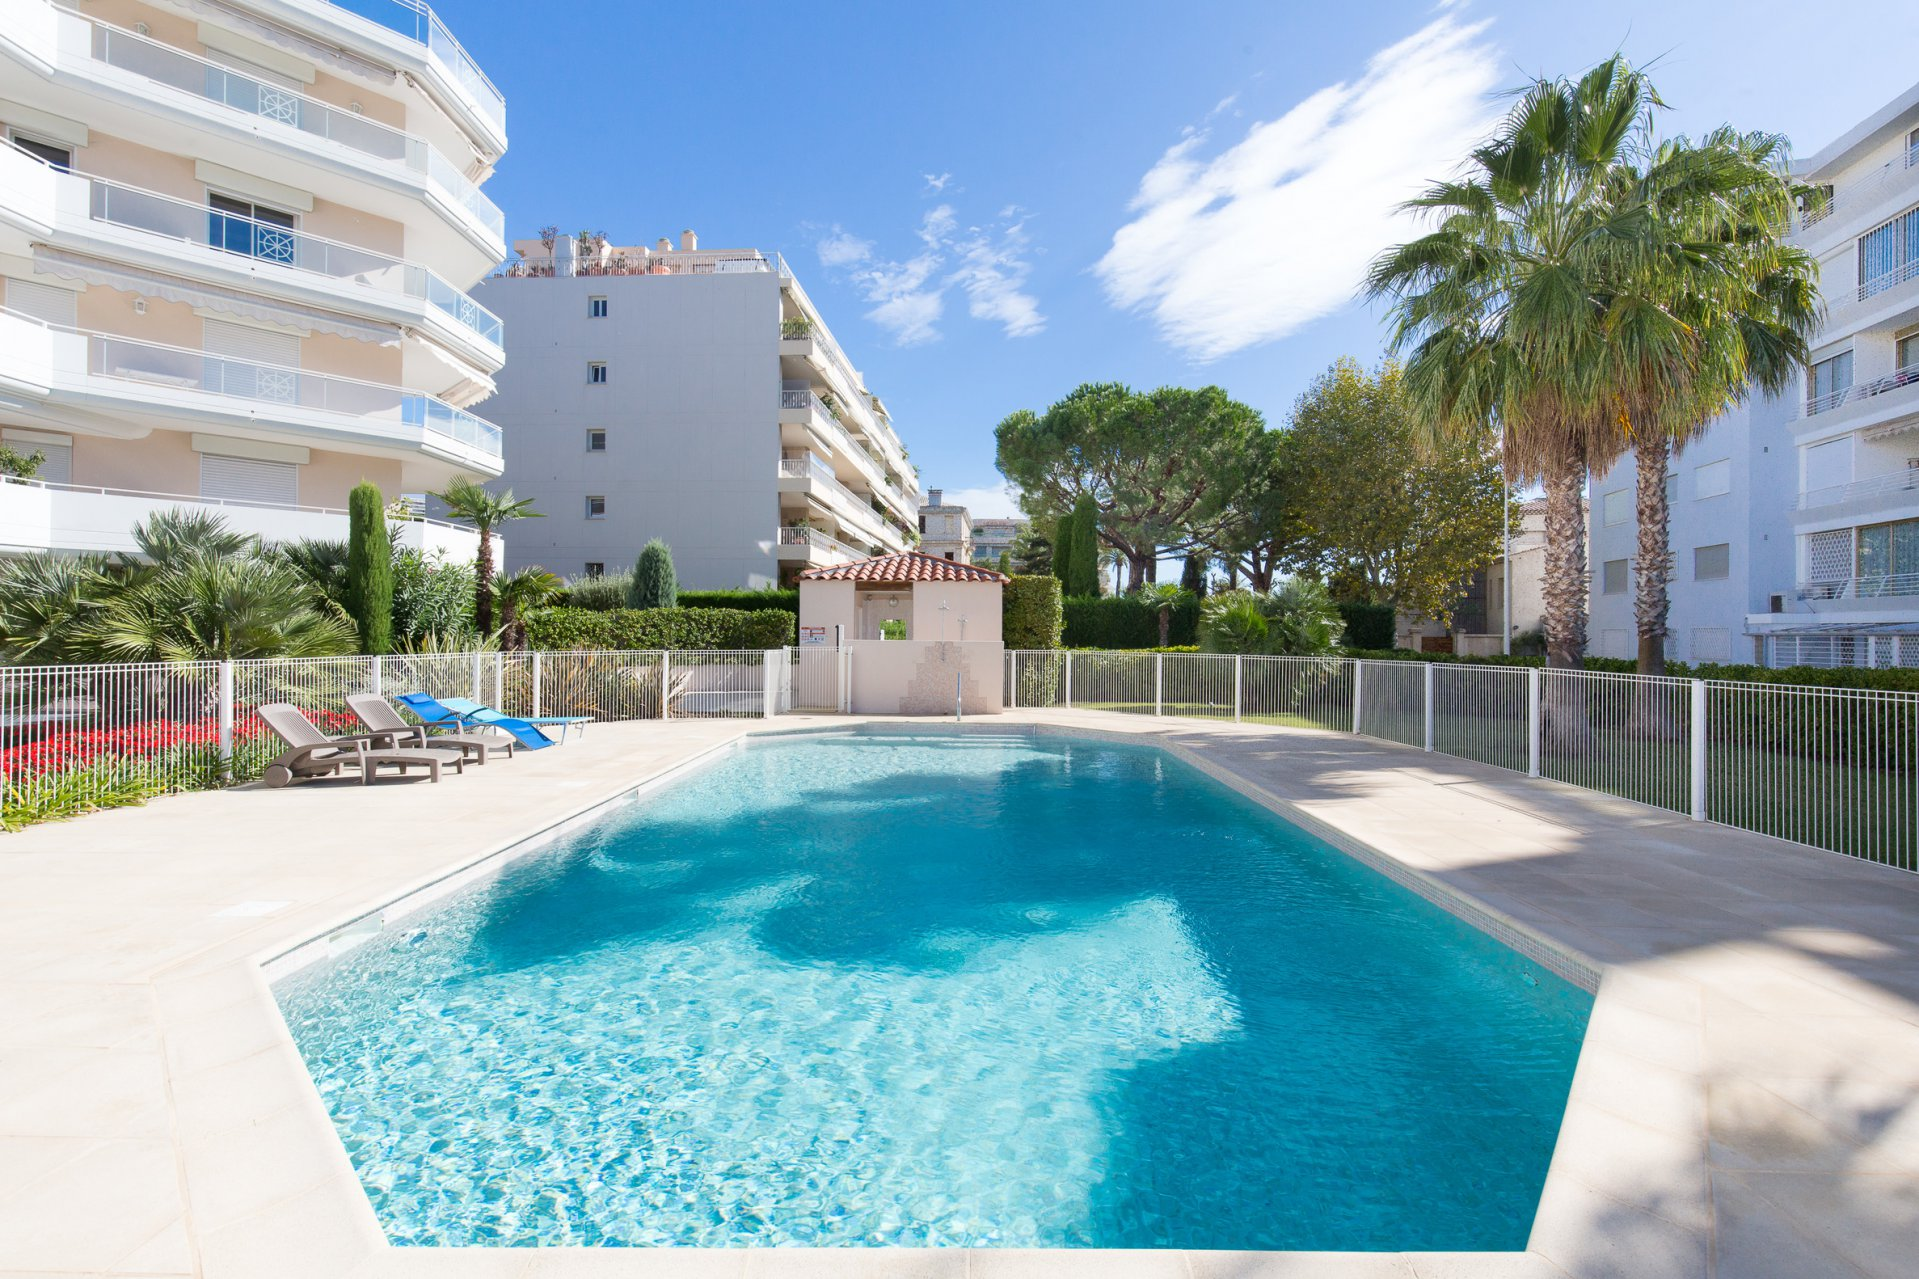 CANNES PALM BEACH - ONE BEDROOM APPARTMENT IN A LUXURIOUS RESIDENCE WITH SWIMMING POOL